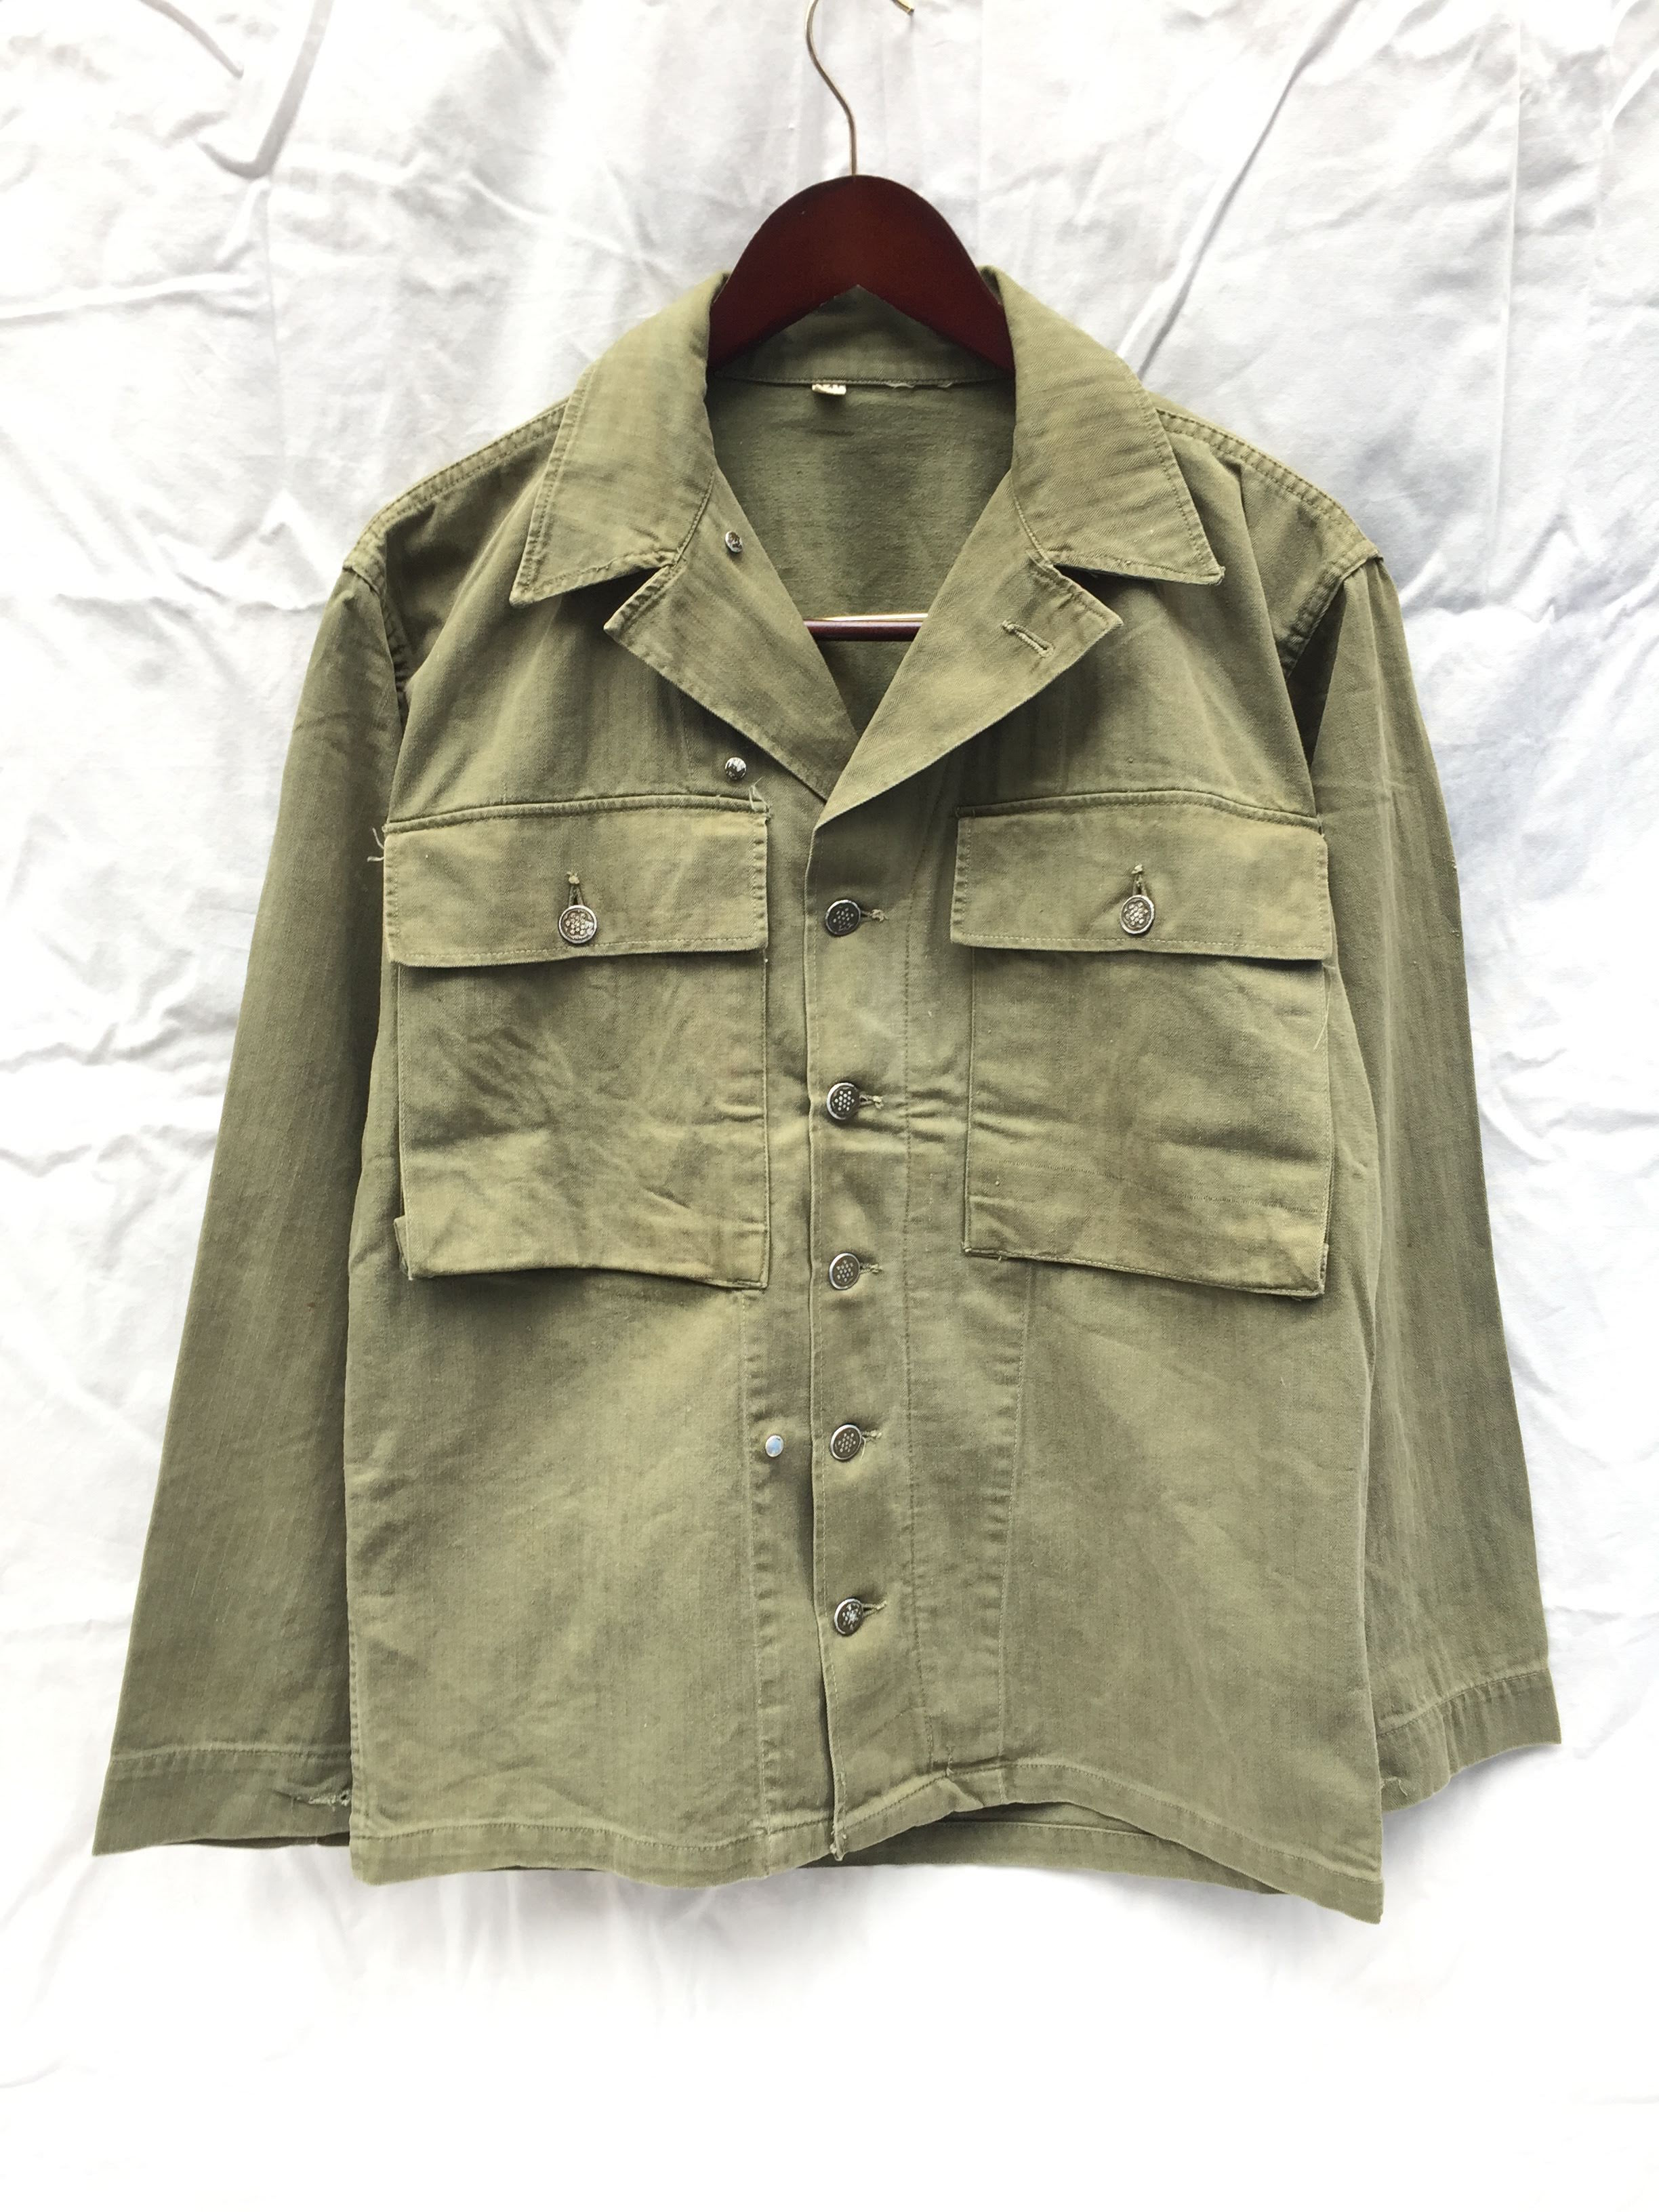 40's Vintage Dead Stock US Army M-43 HBT Jacket